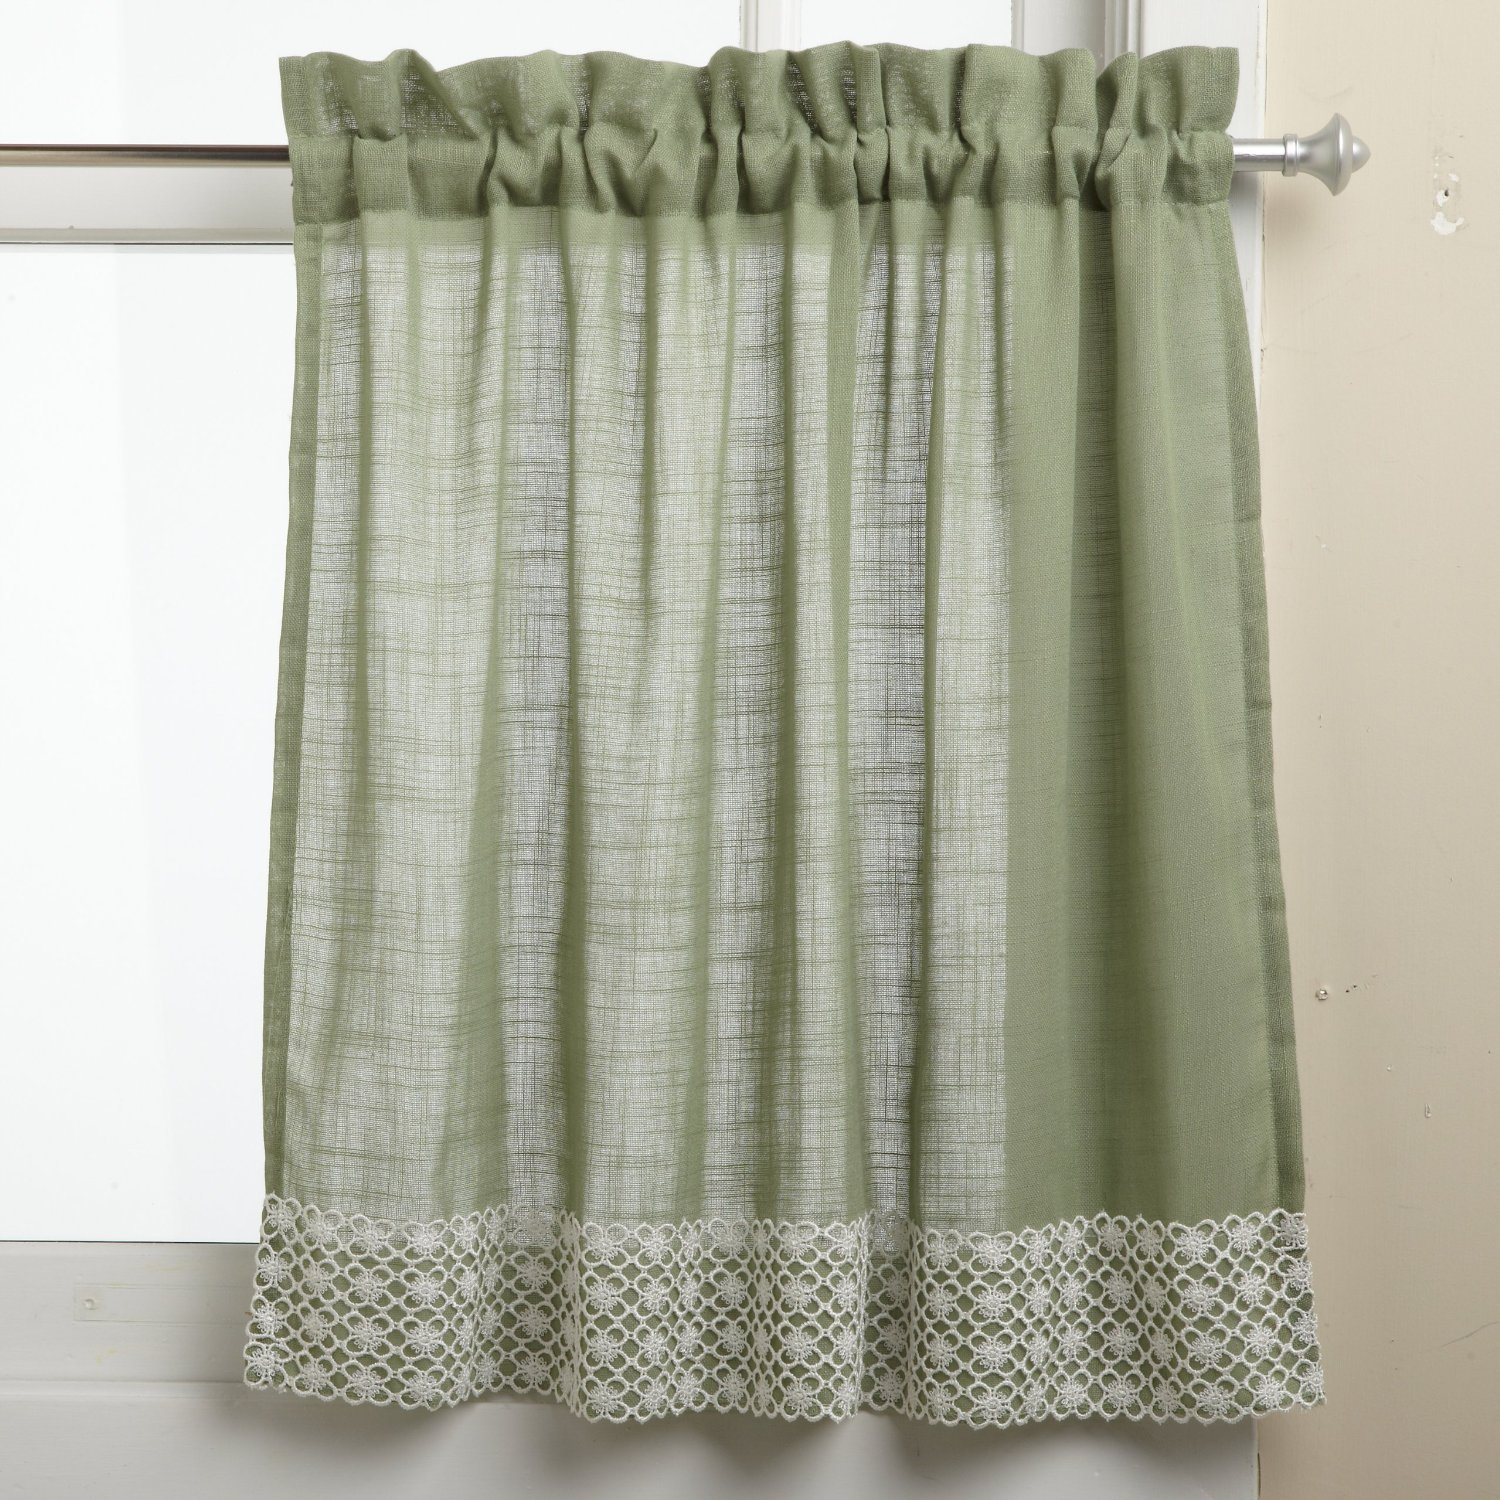 Small curtains models for kitchens interior decorating for Kitchen window curtains